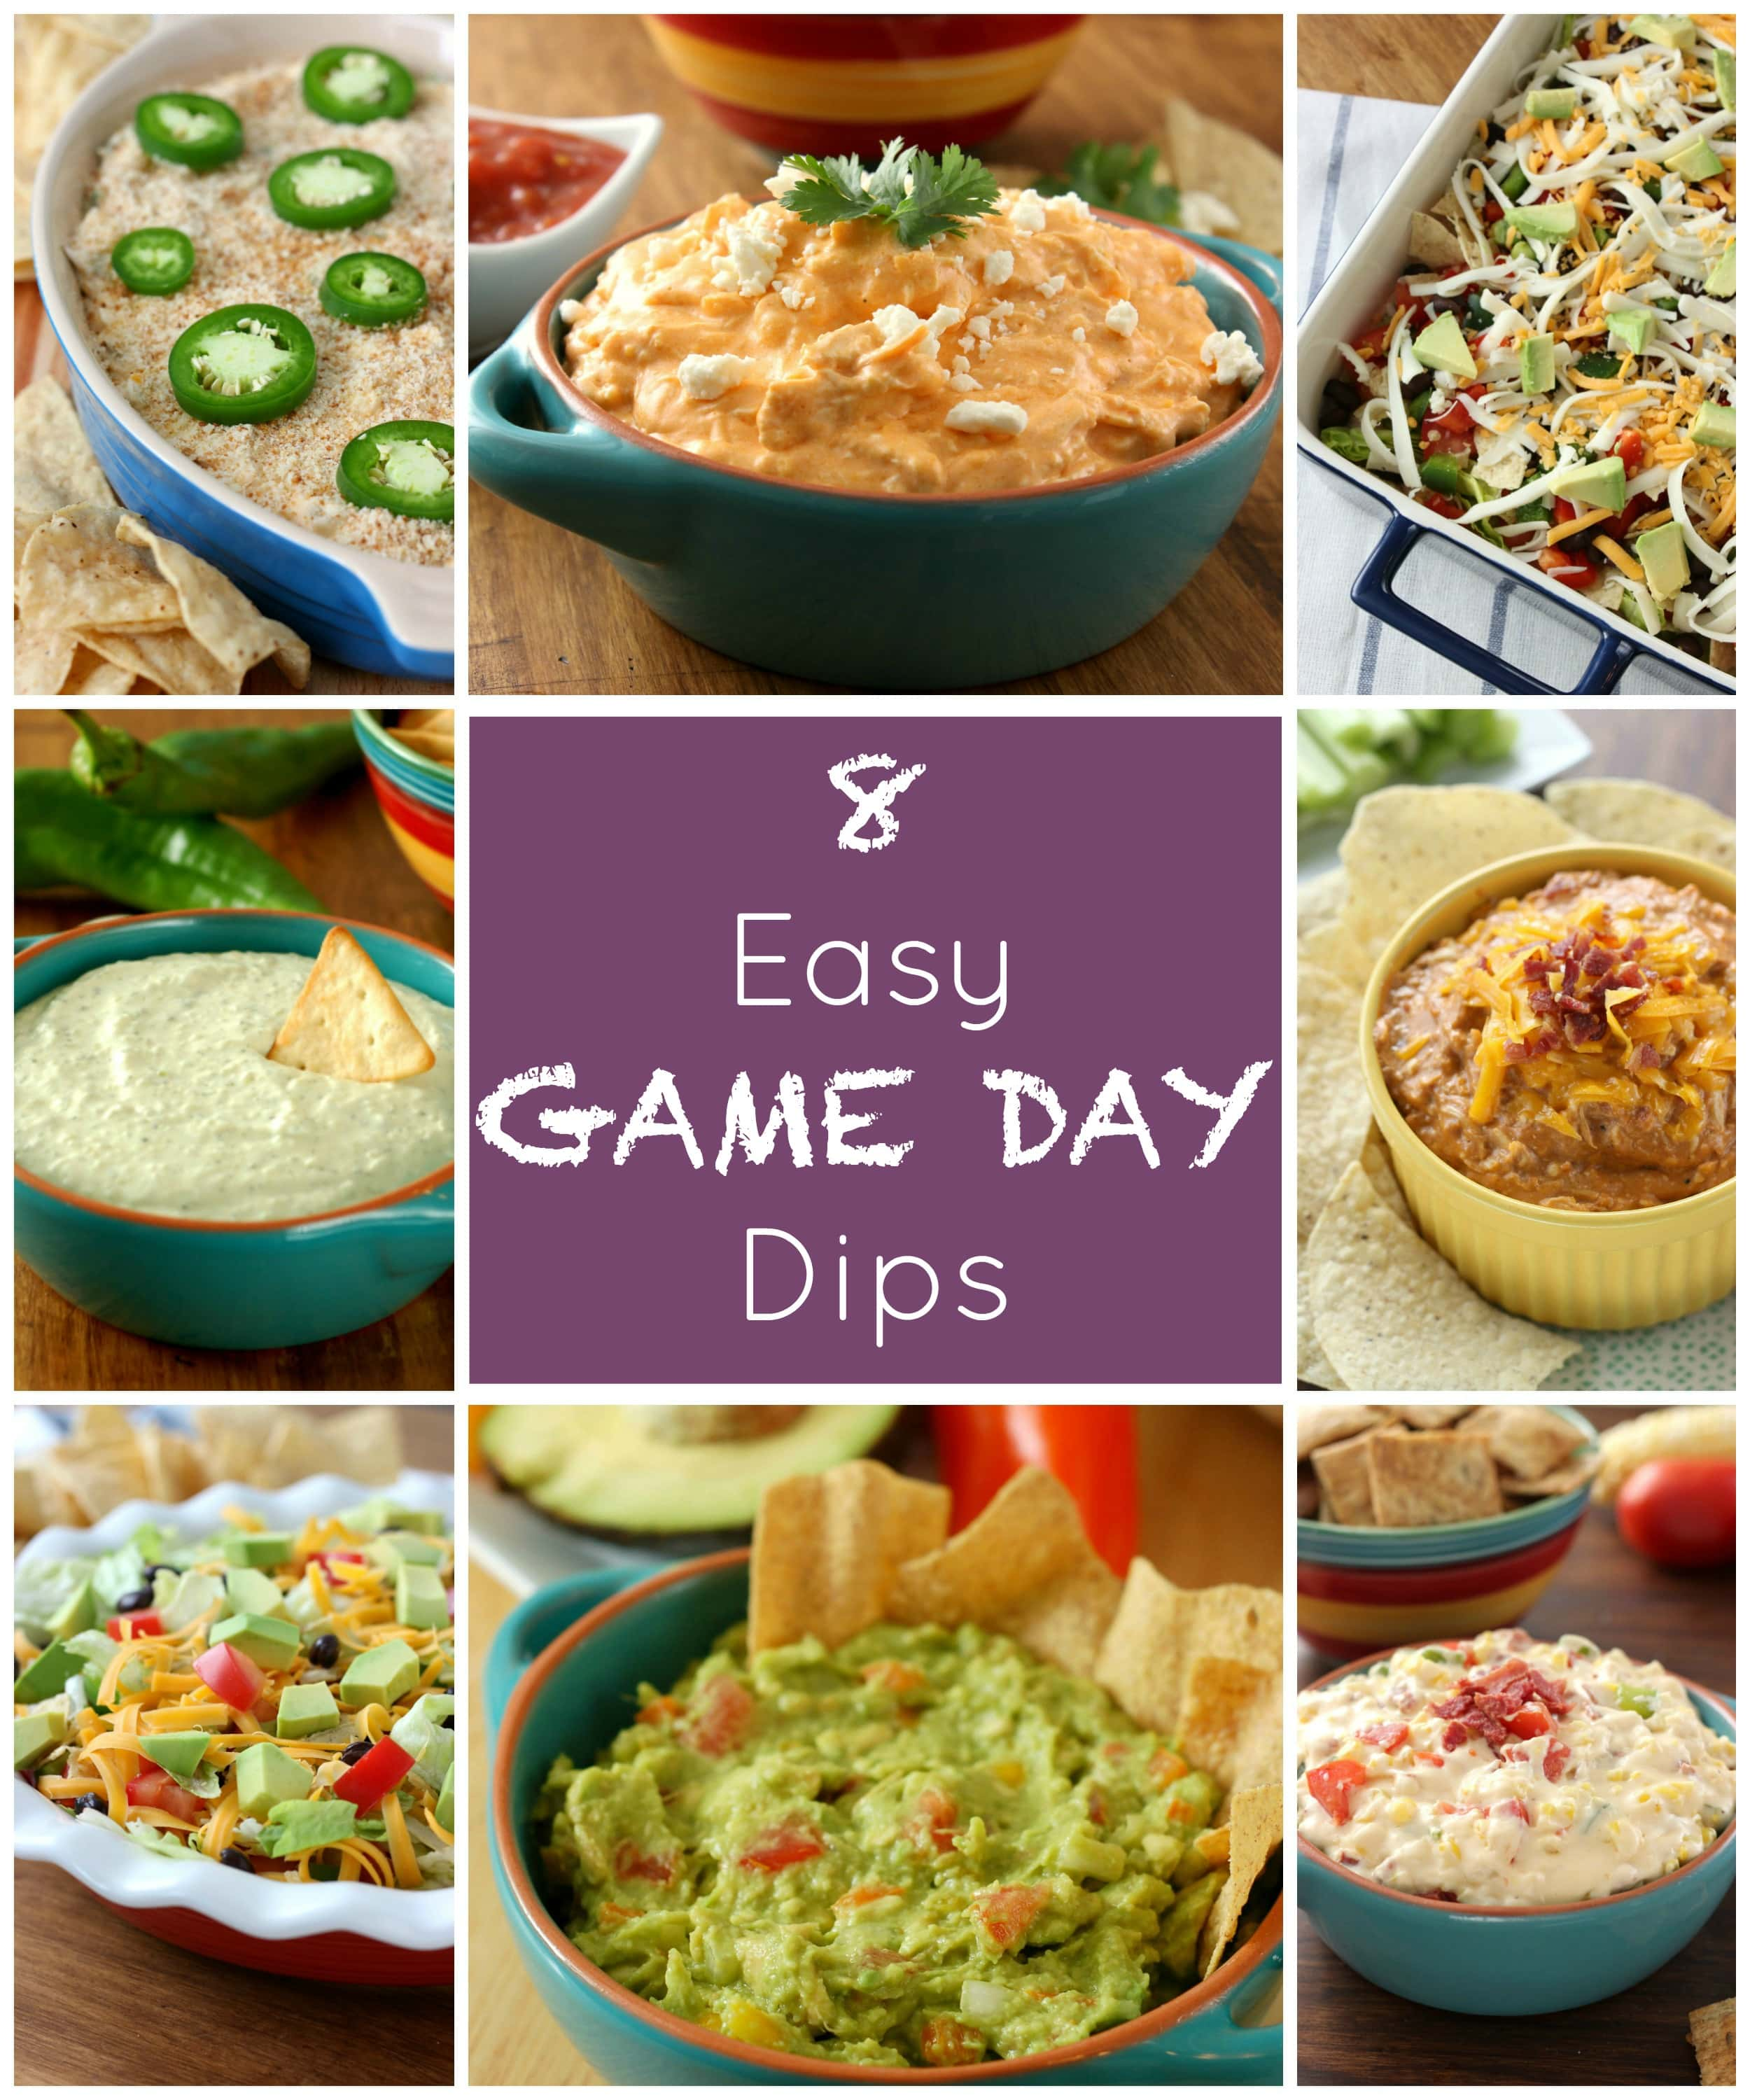 8 Easy Game Day Dips from A Kitchen Addiction